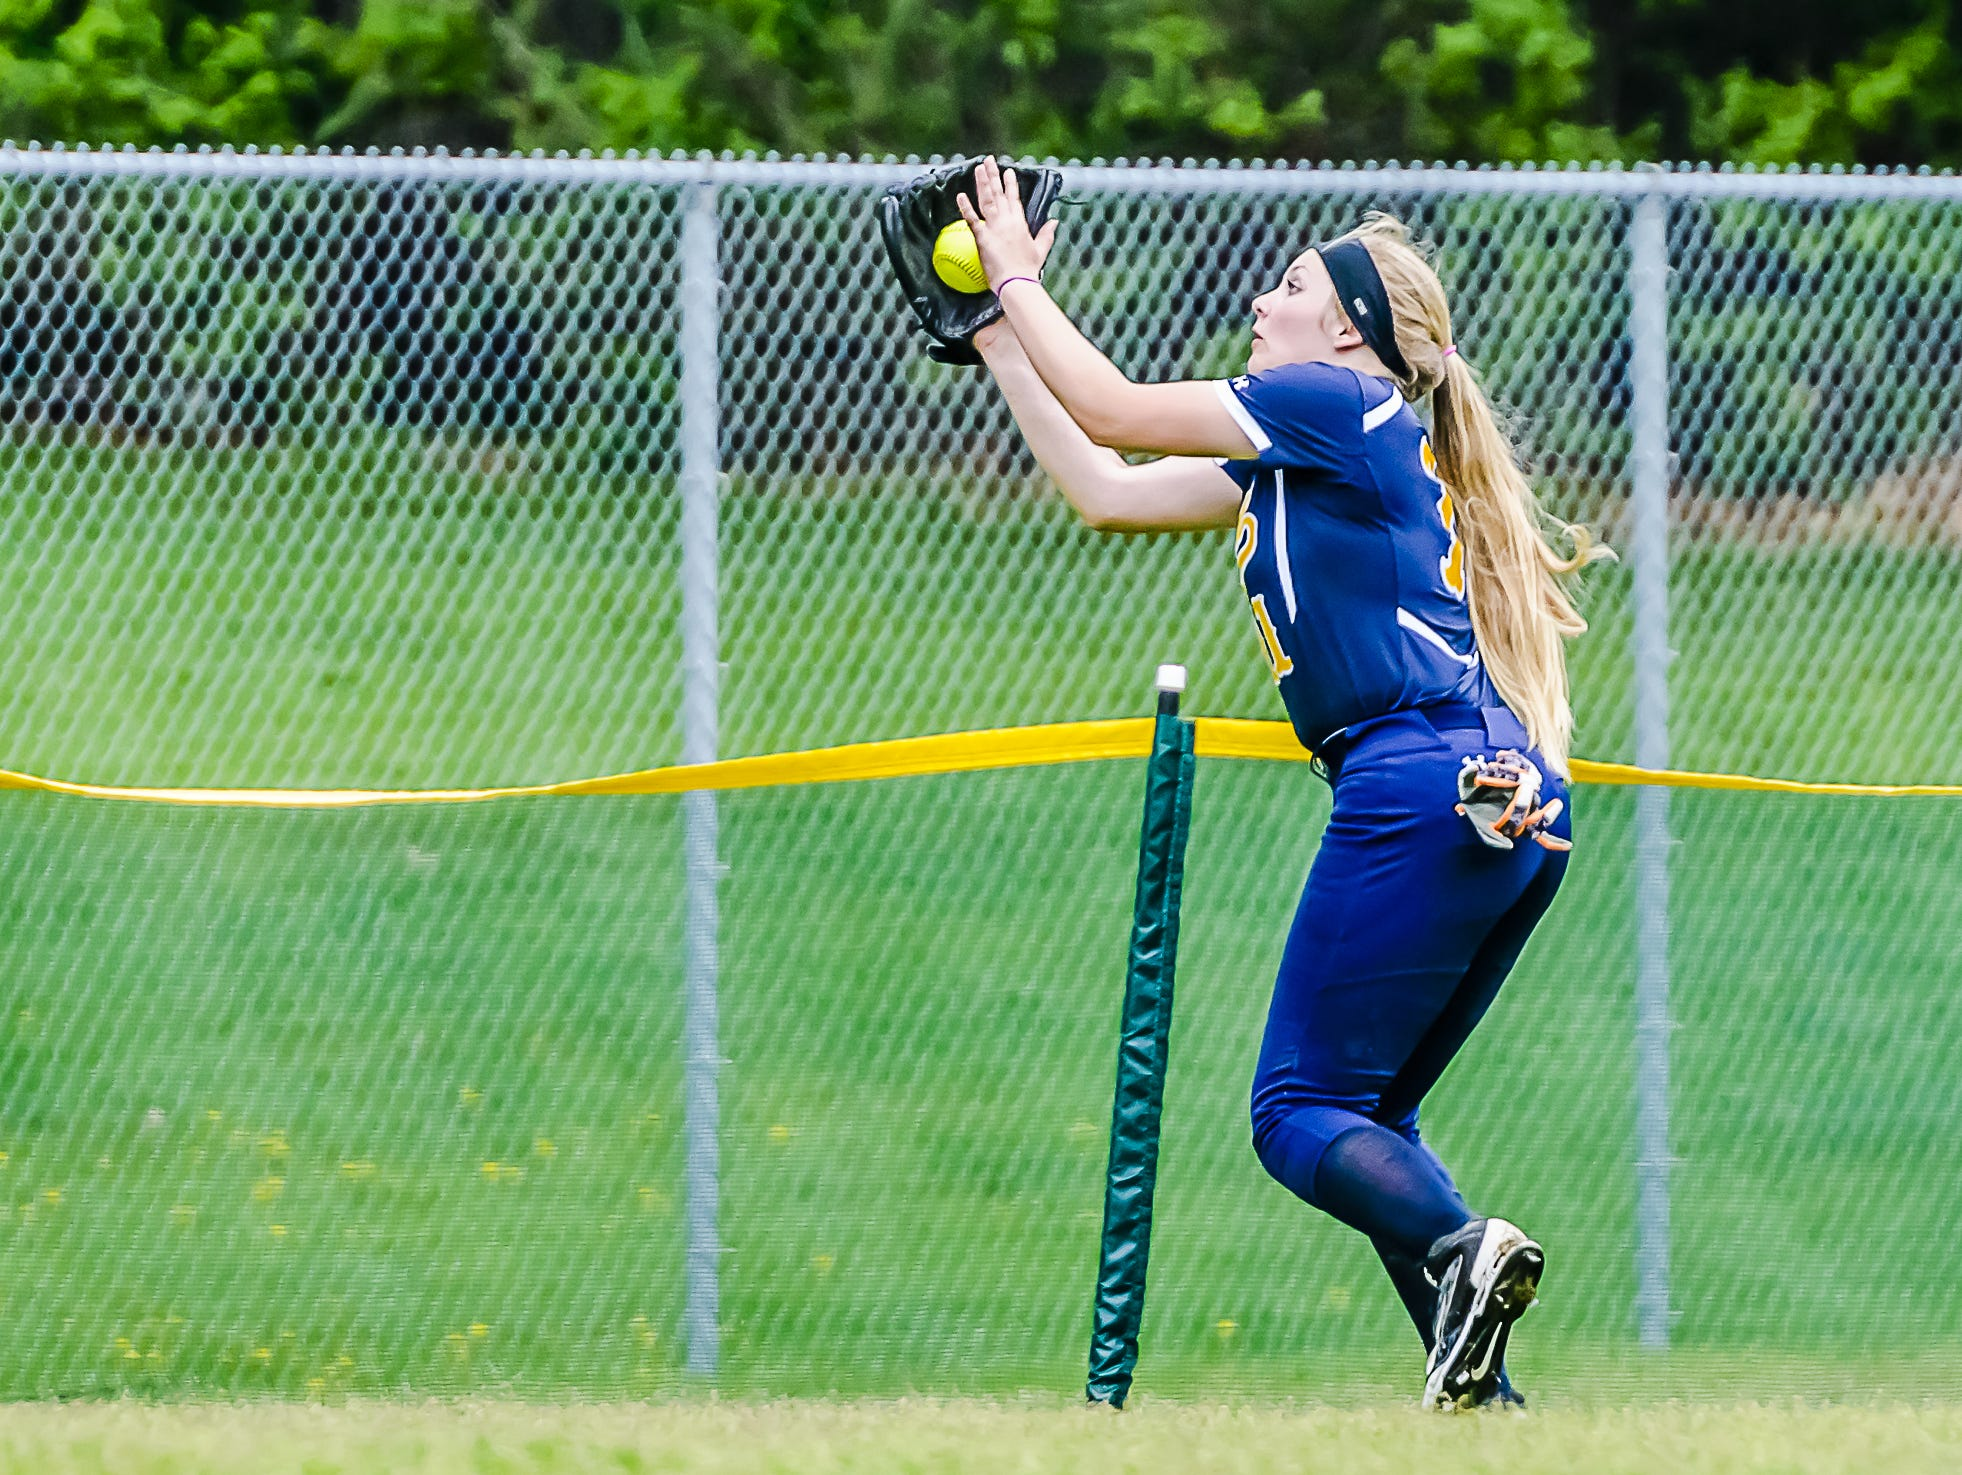 Kilee Way-Walton and DeWitt have carried the momentum from last year's district title into this spring. DeWitt, which is part of the eight-team Softball Classic, entered Thursday with a 12-5 record.